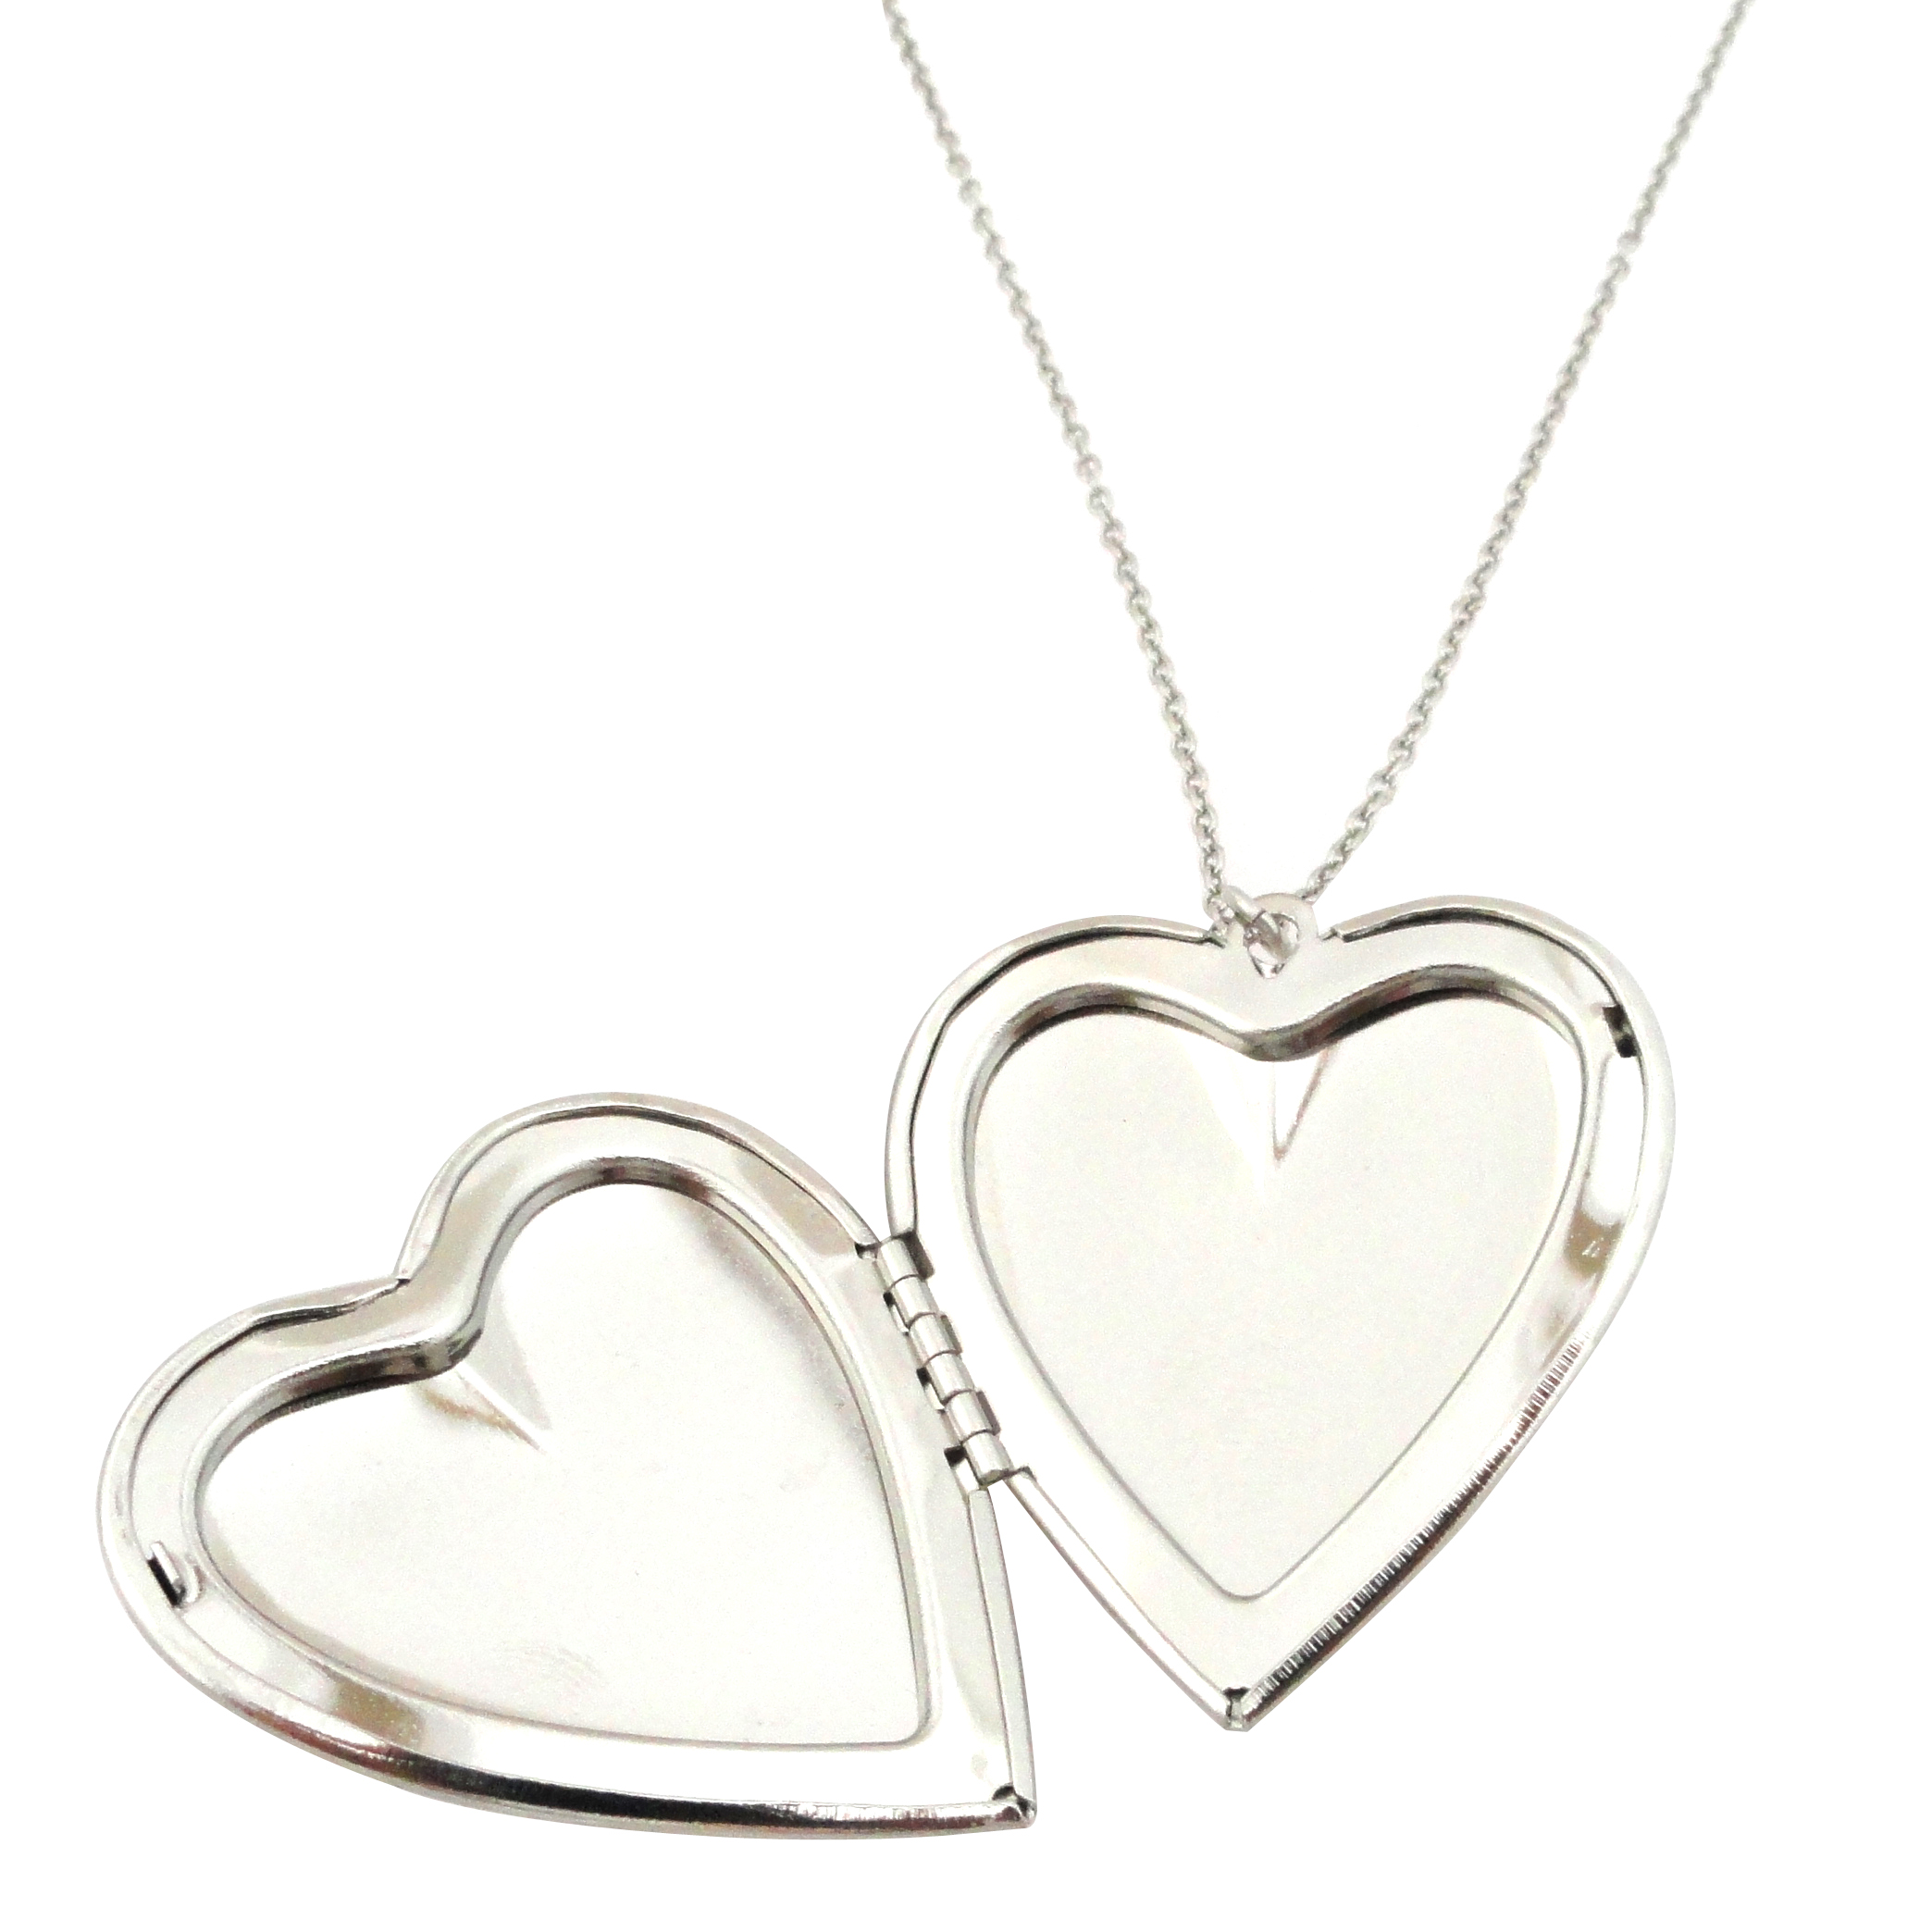 pm copy at shot marie double screen disc two jewellery heart switch products necklace natalie